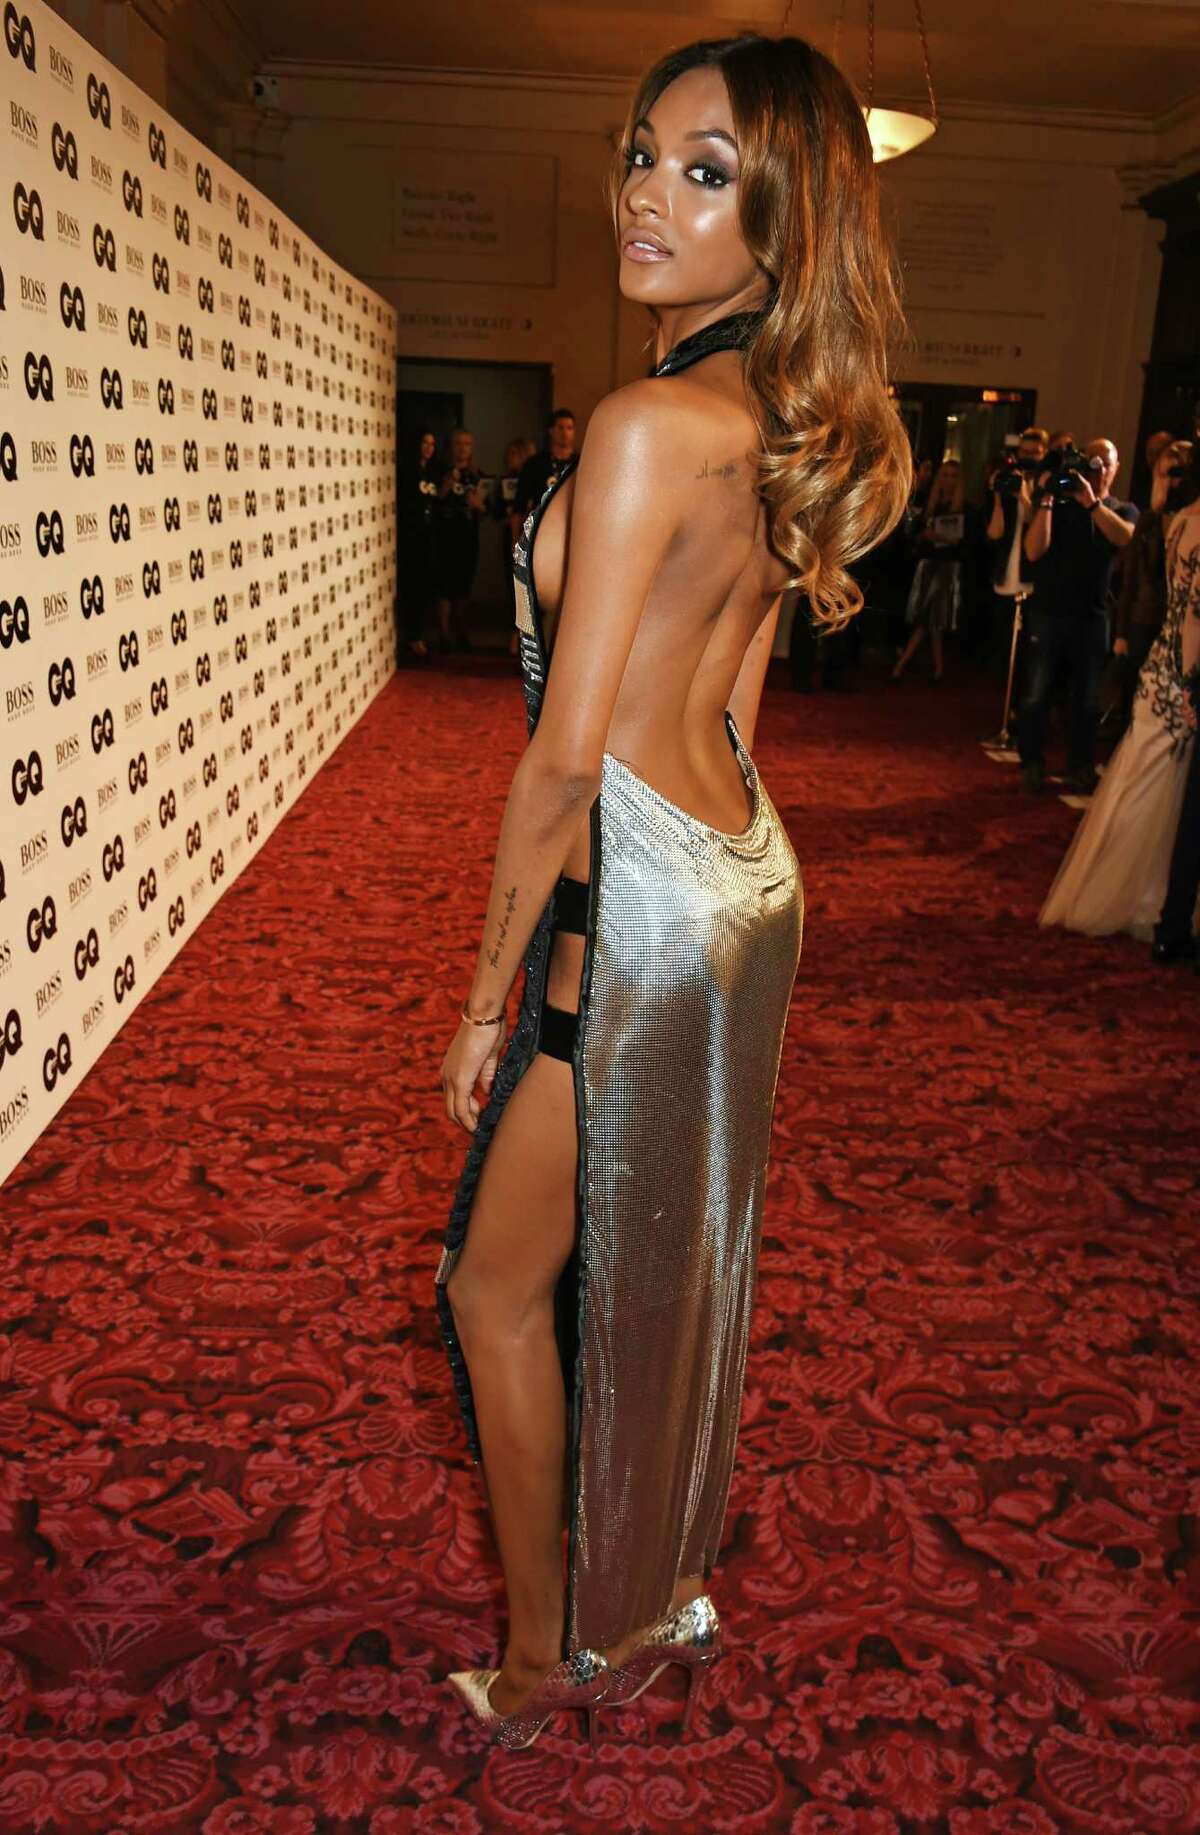 Jourdan Dunn attends the GQ Men Of The Year Awards at The Royal Opera House on September 8, 2015 in London, England. (Photo by Samir Hussein/WireImage)